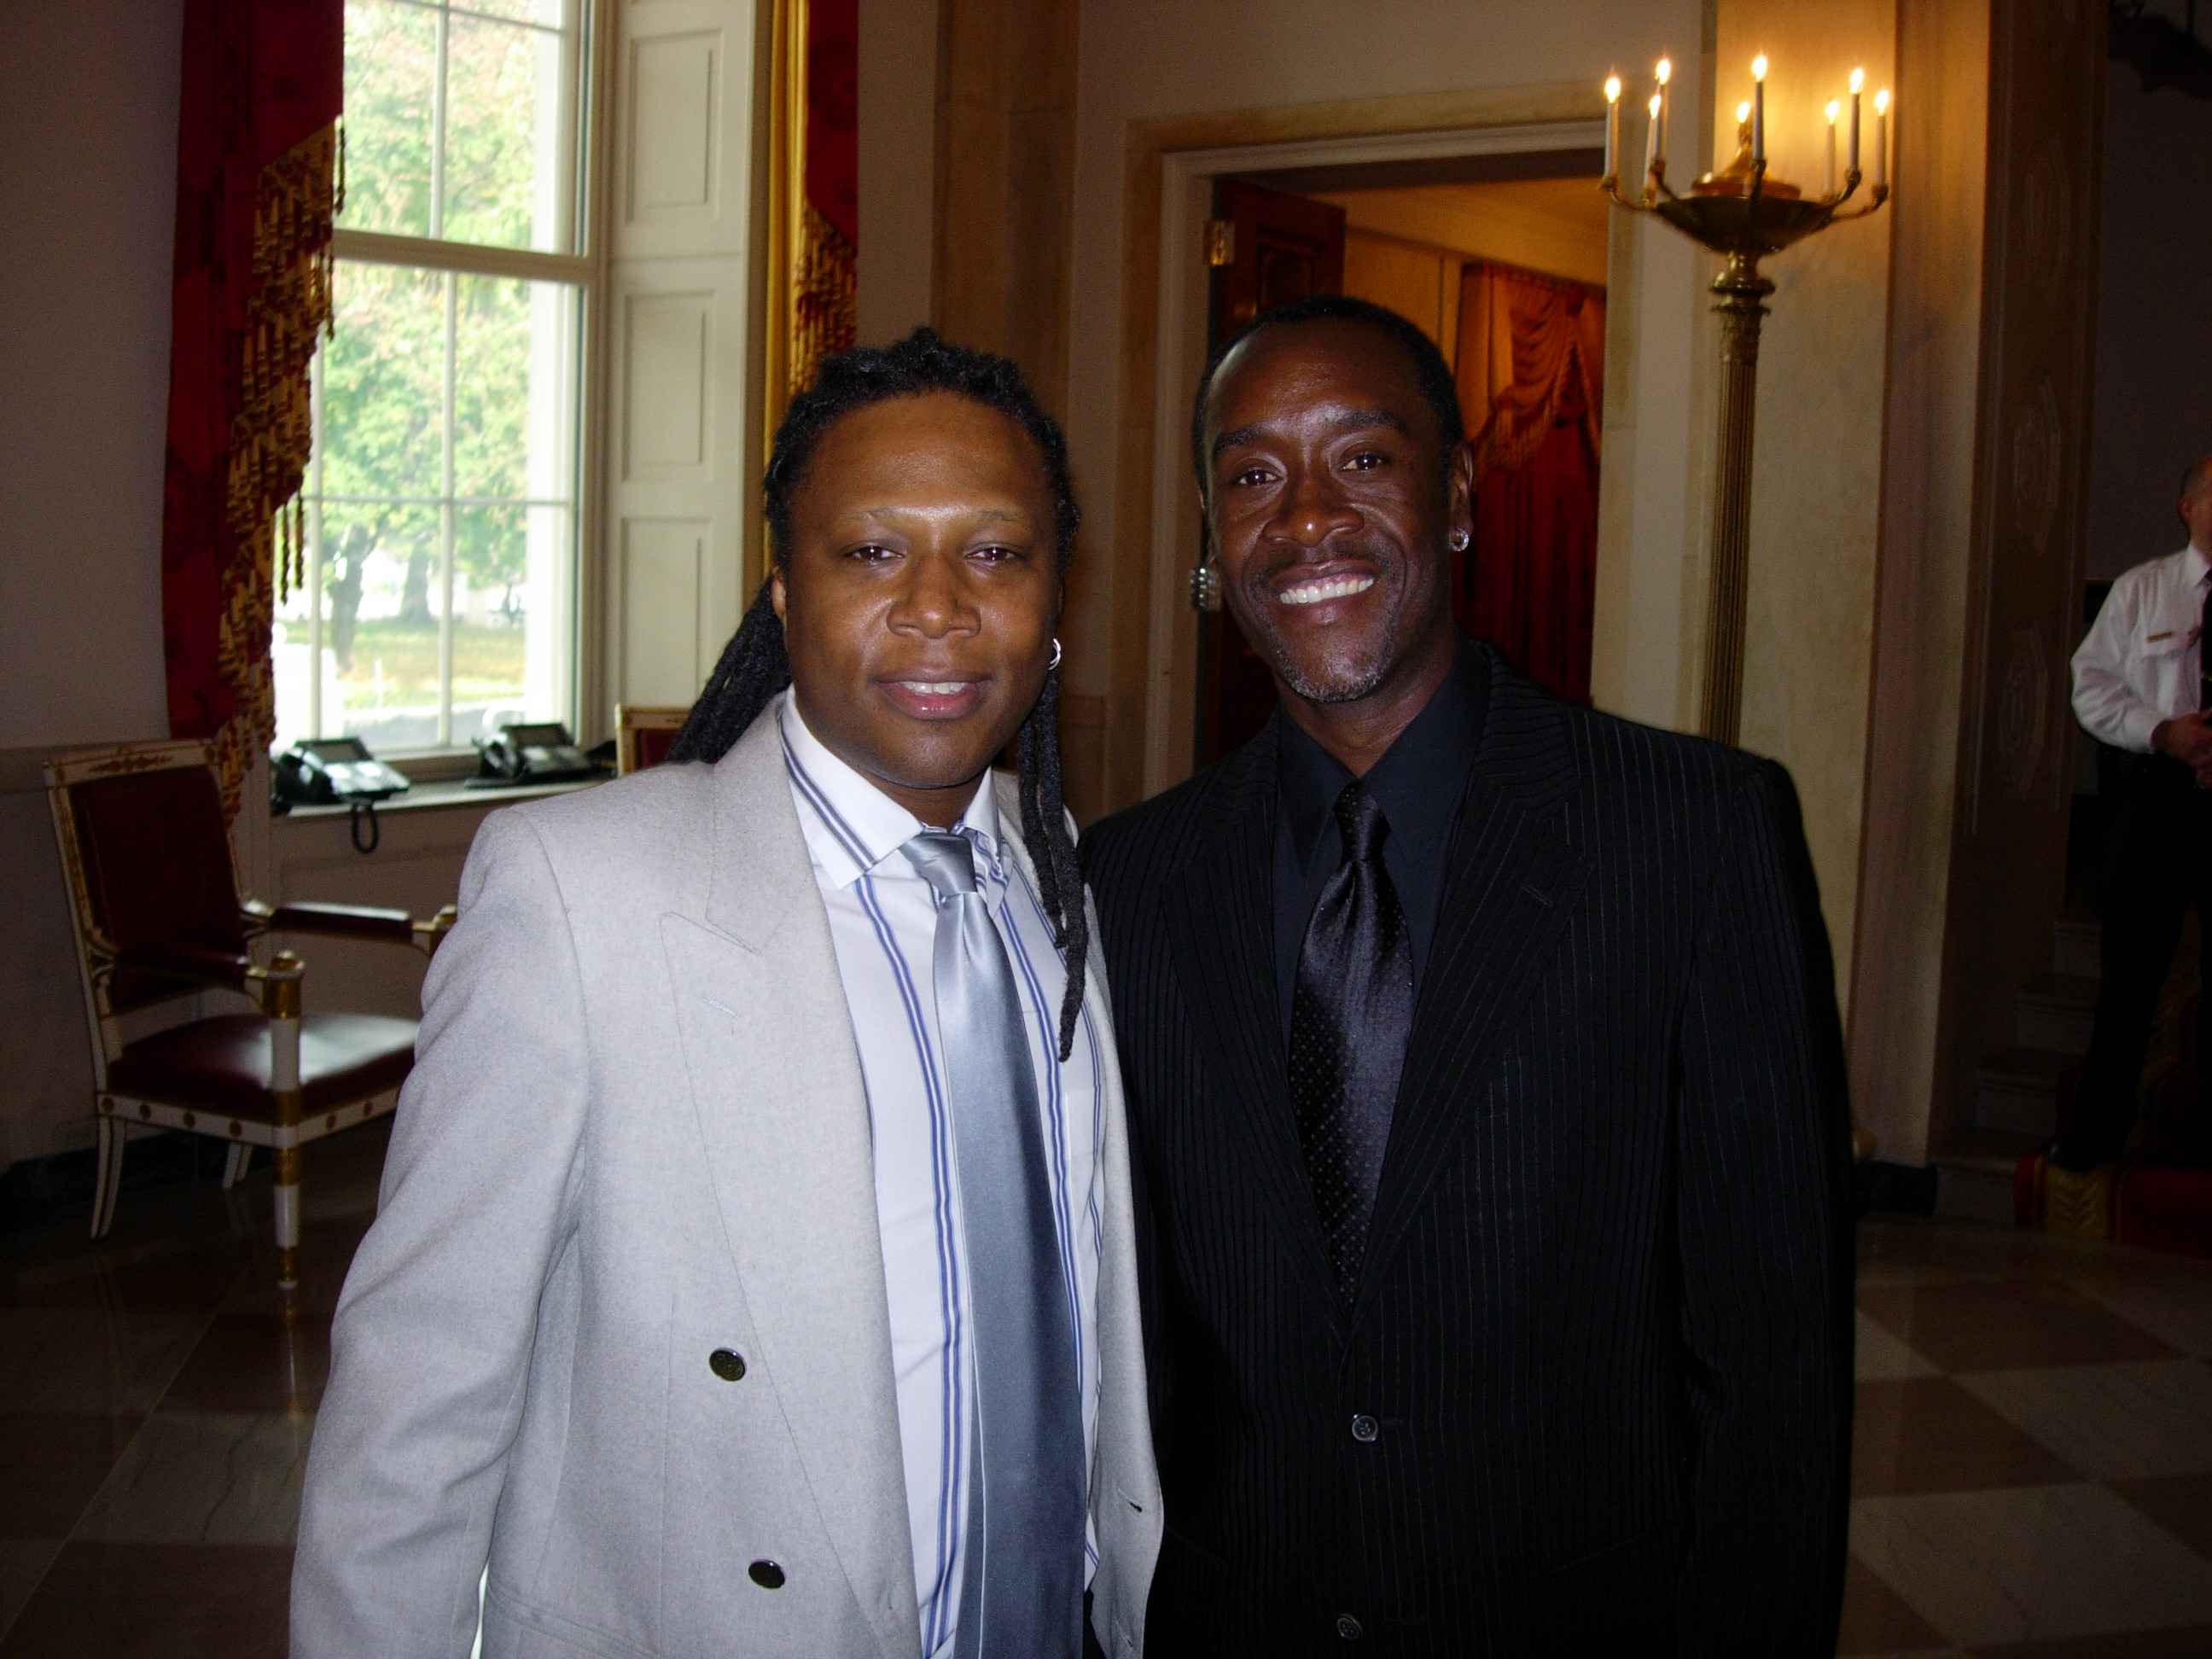 Ted and Don Cheadle